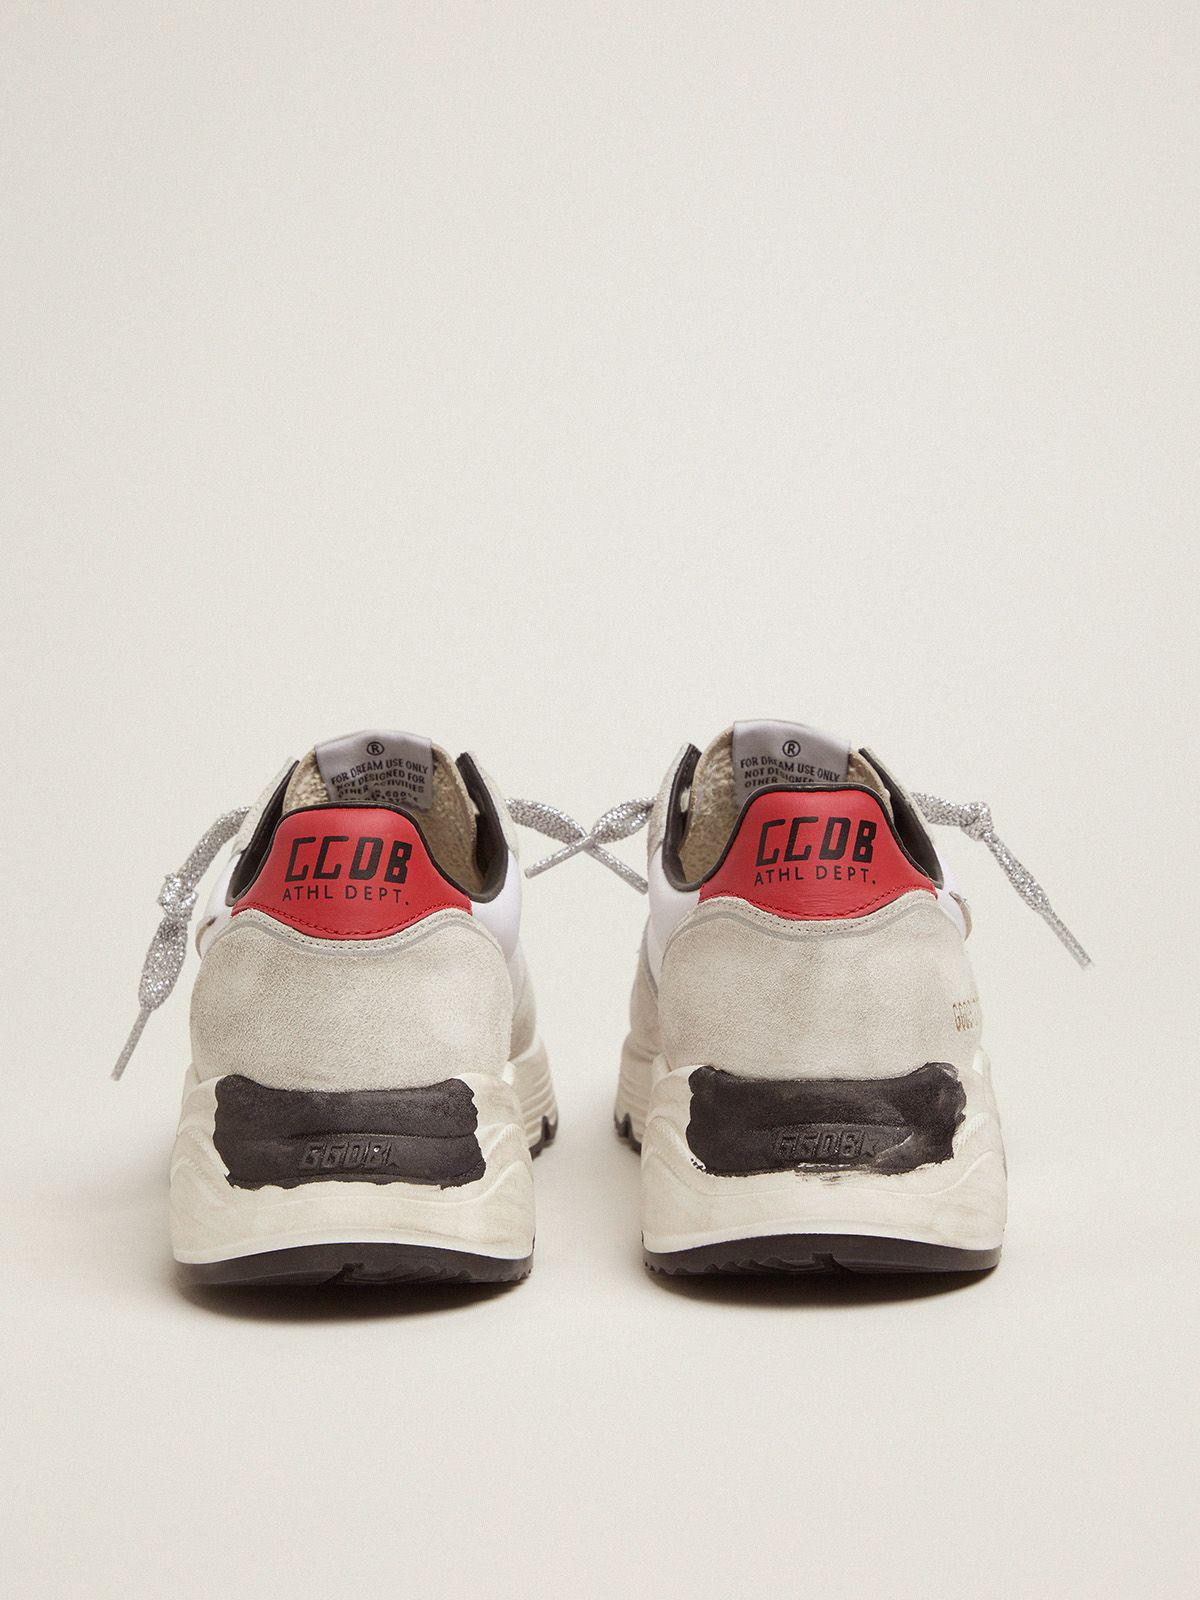 Running Sole sneakers with red heel tab and silver star 3